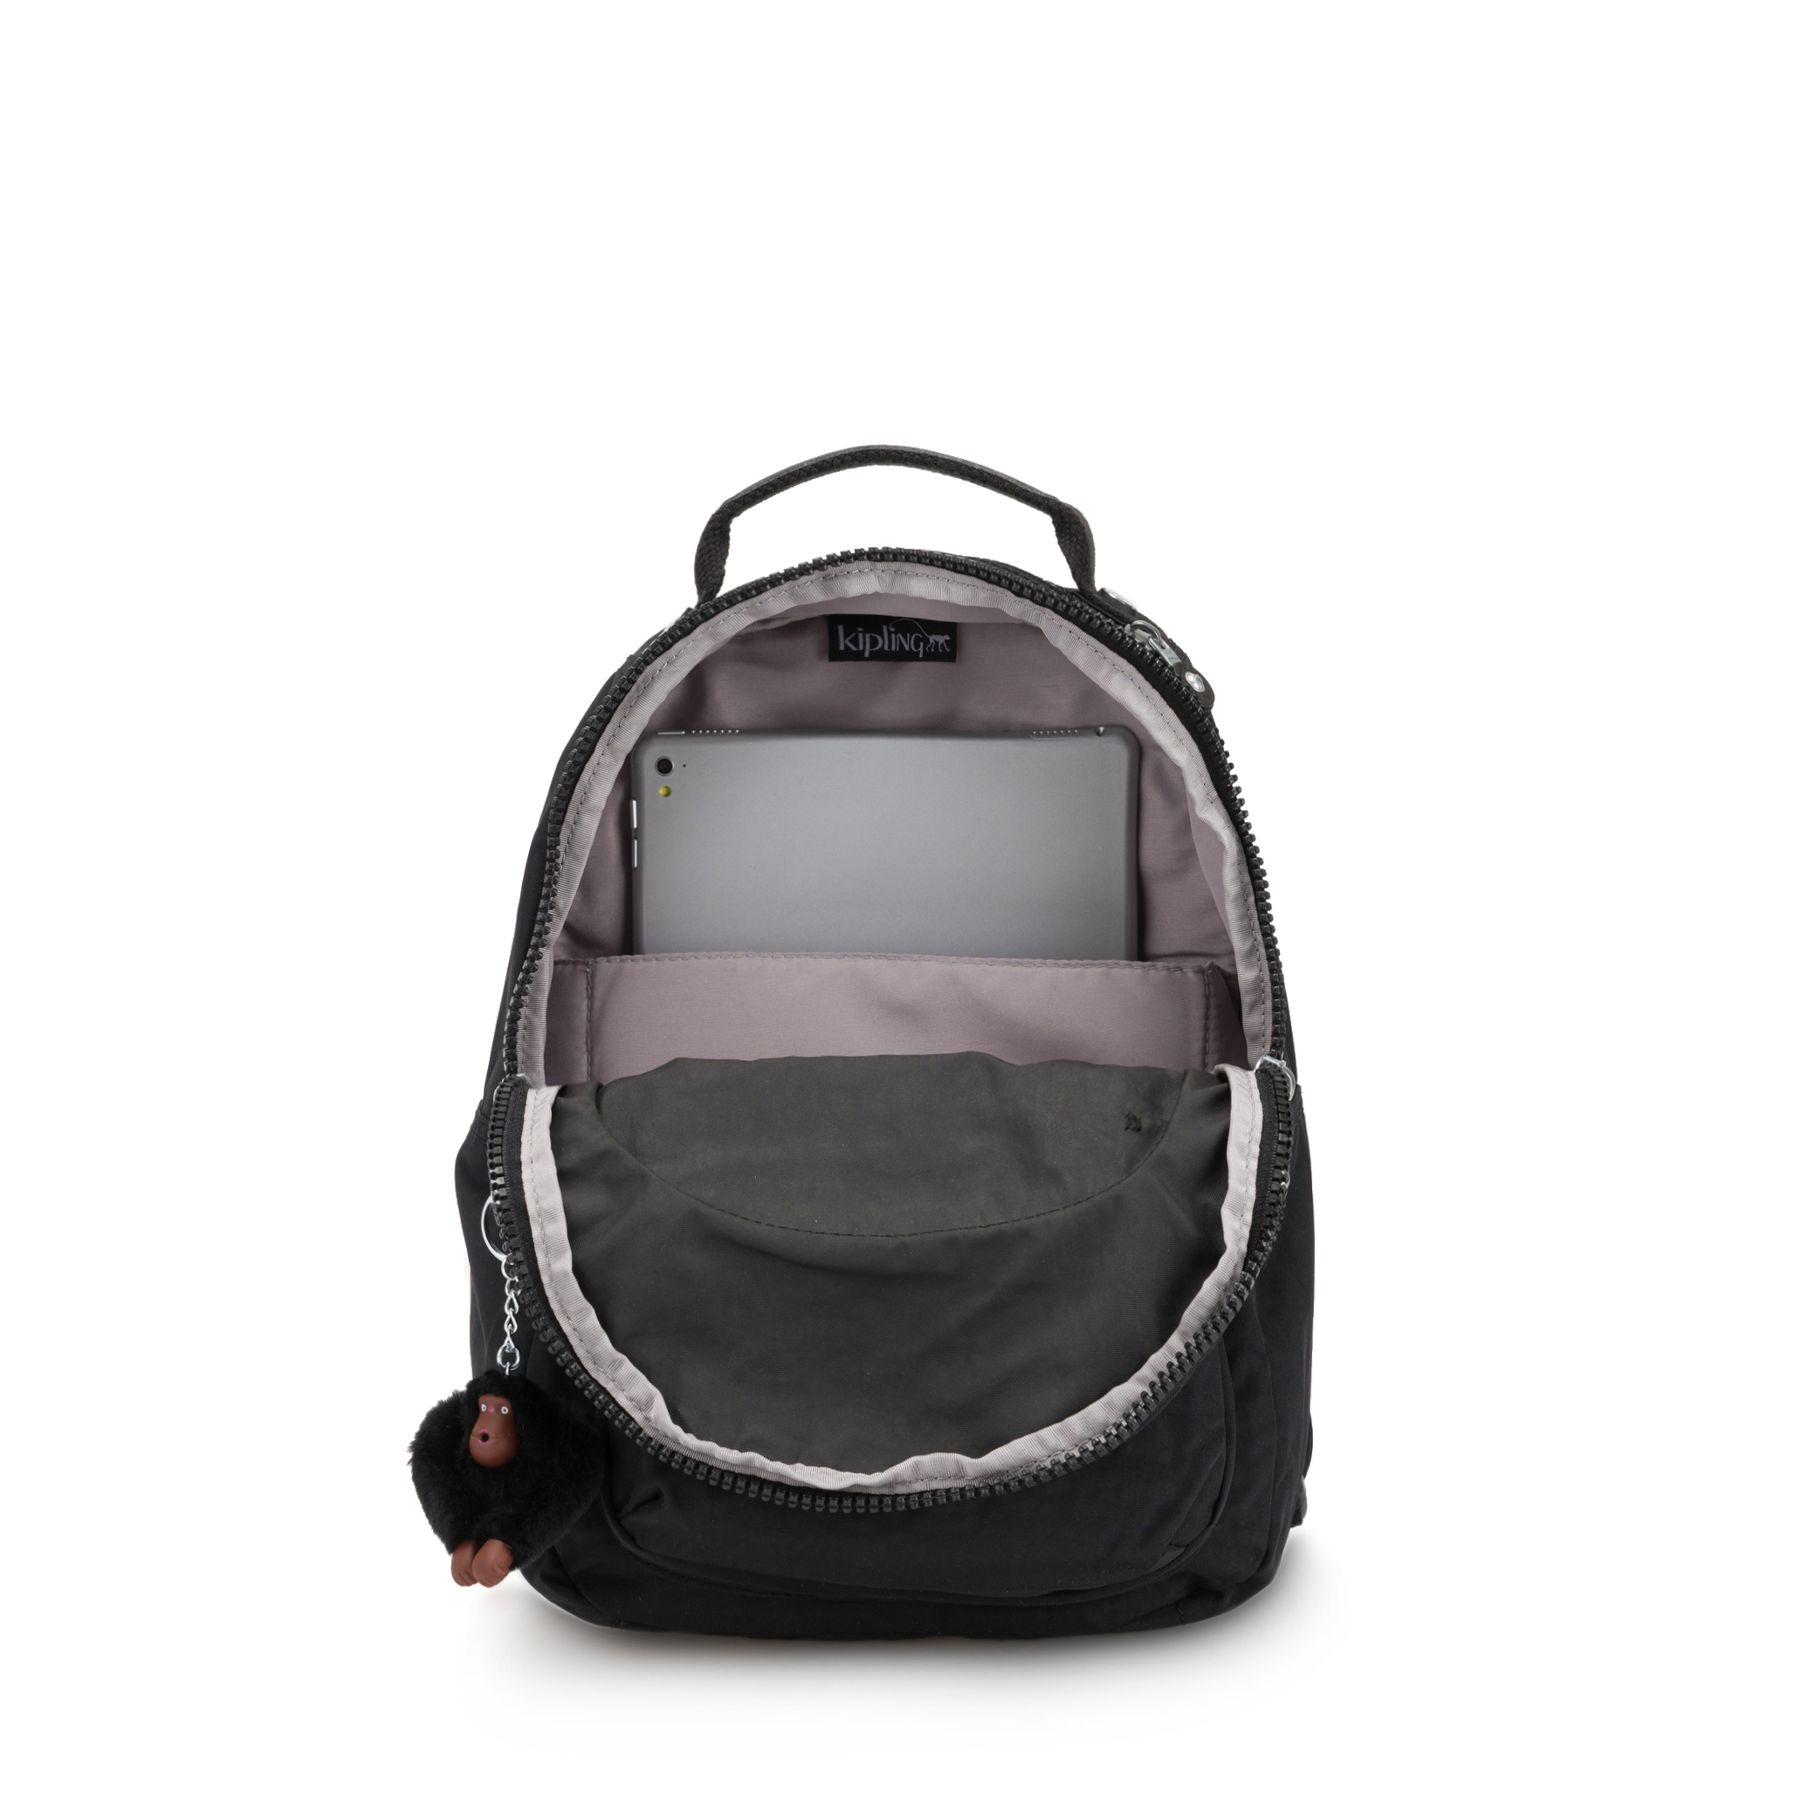 CLAS SEOUL S BACKPACKS by Kipling - Inside view